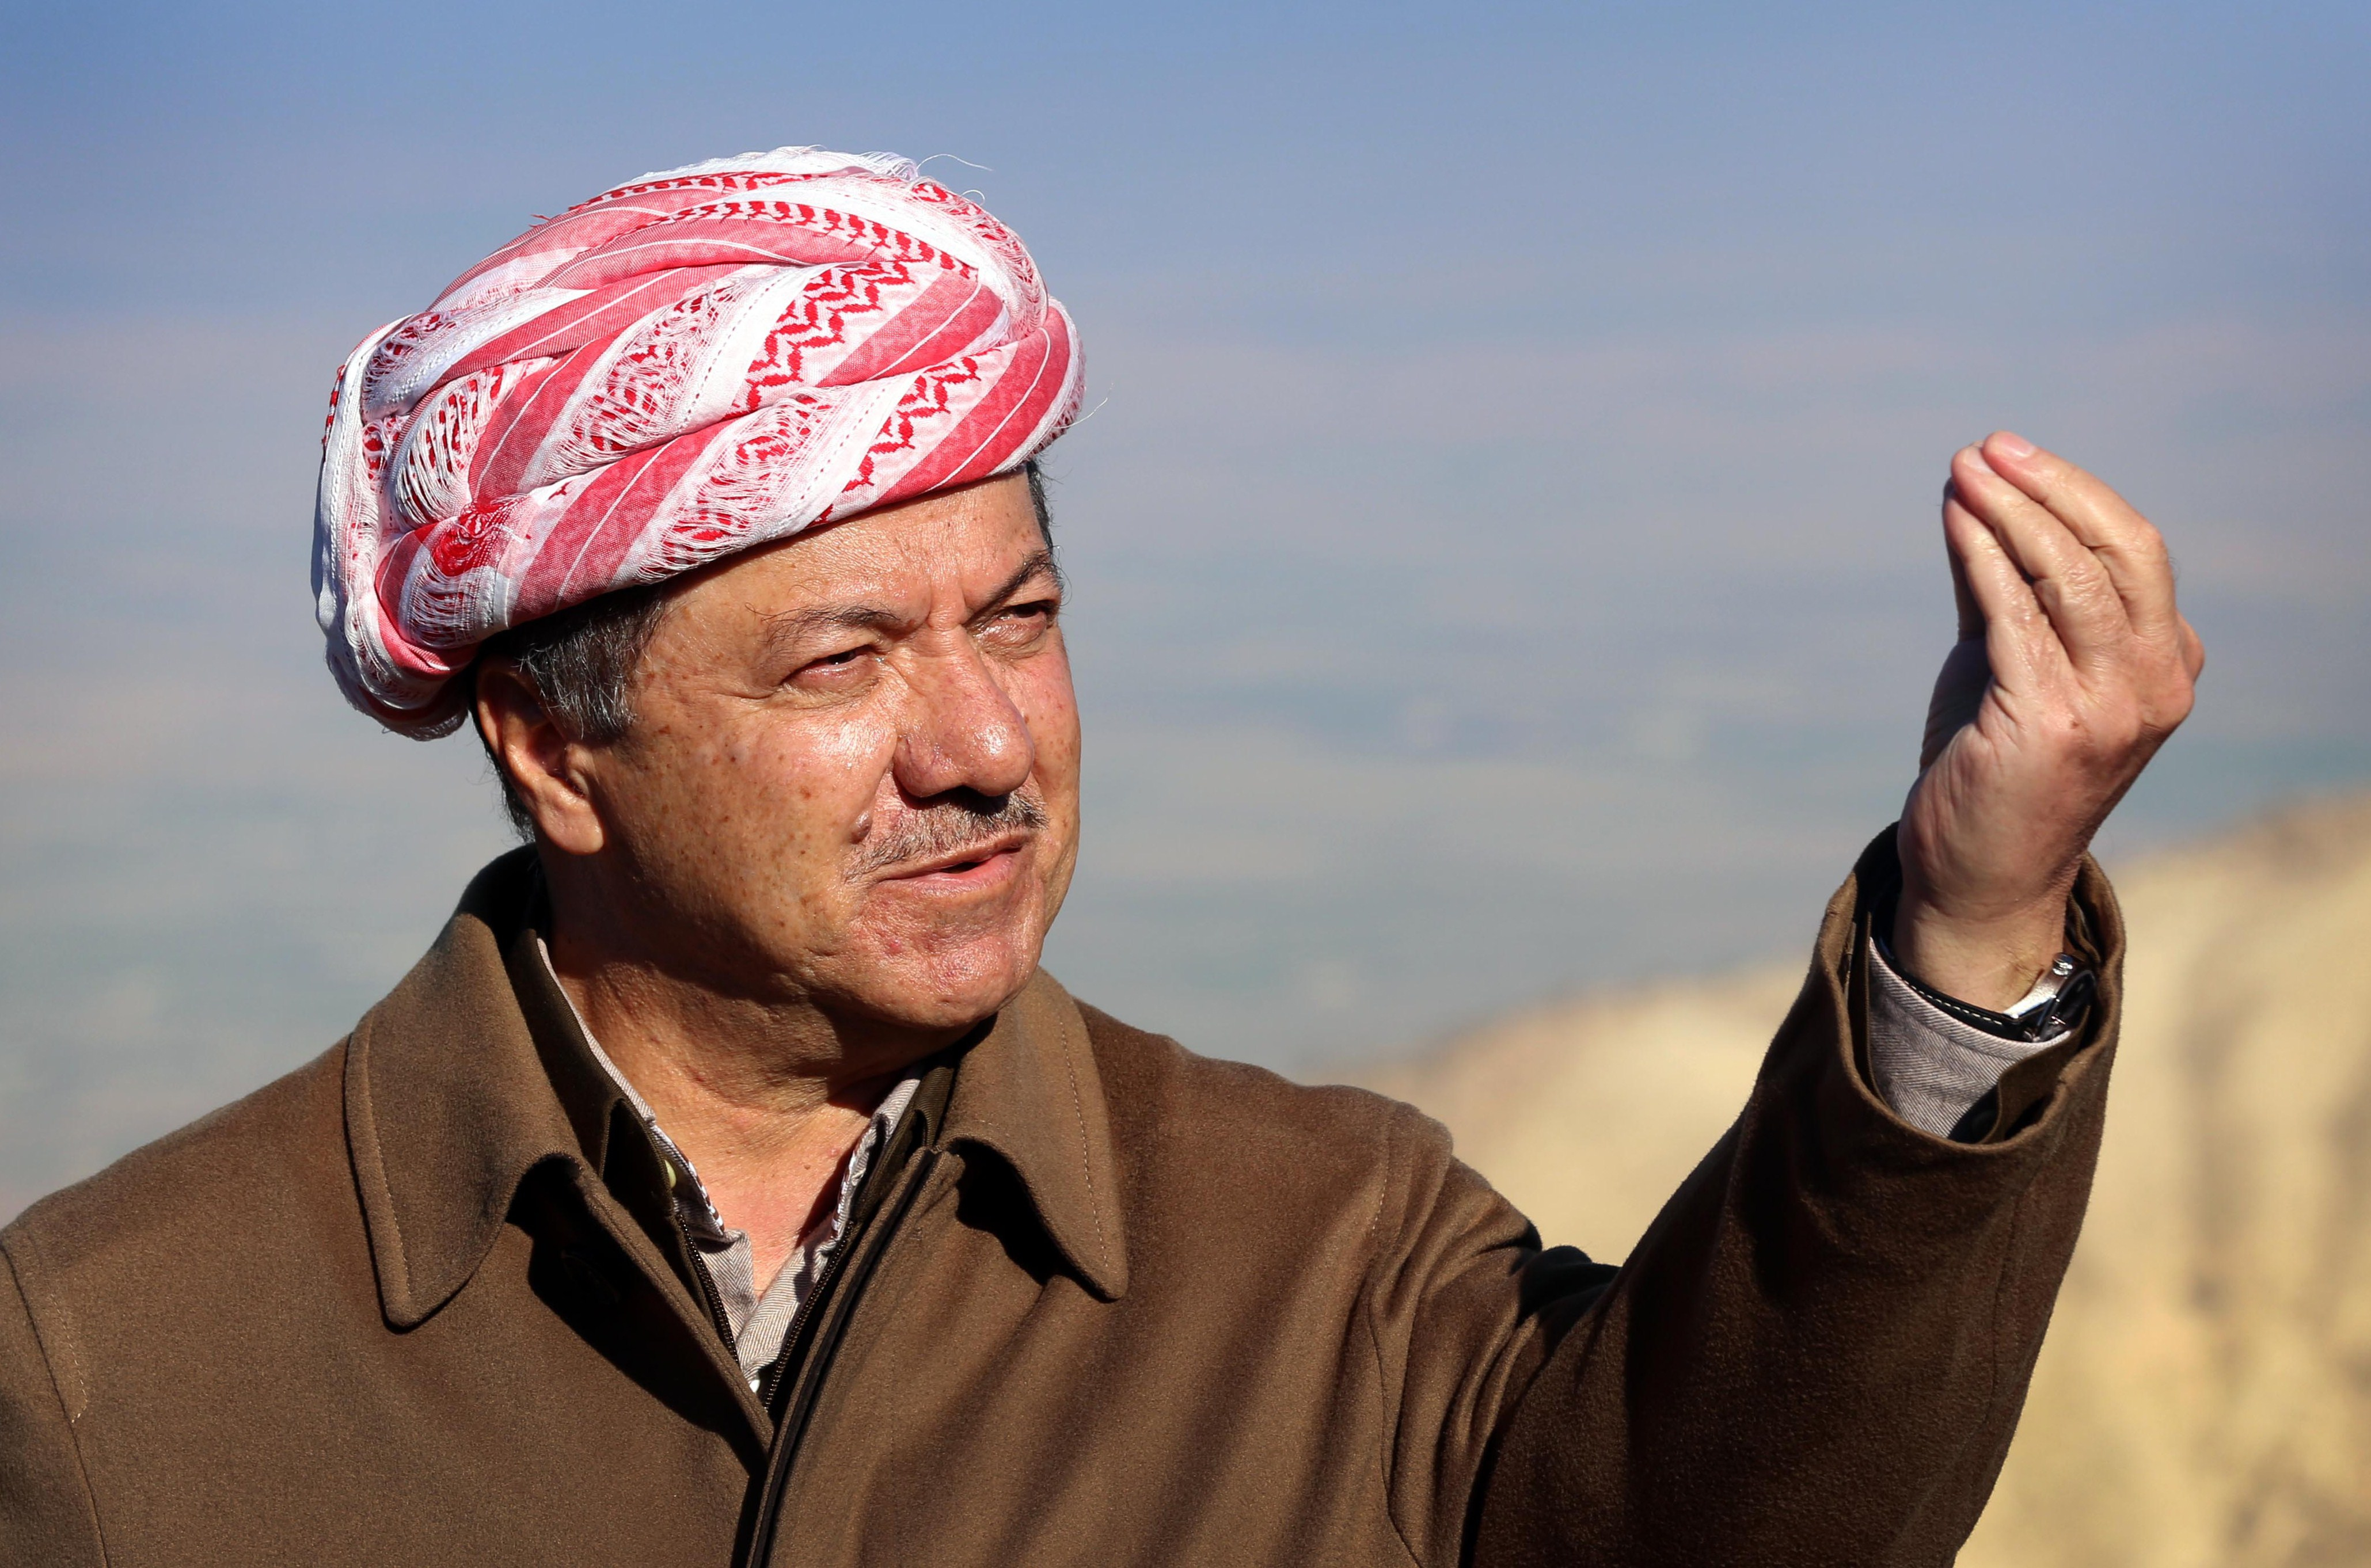 Iraqi Kurdish leader Masoud Barzani speaks to journalists on Dec. 21, 2014, during a visit to Mount Sinjar, west of the northern Iraqi city of Mosul. (Safin Hamed/AFP/Getty Images)